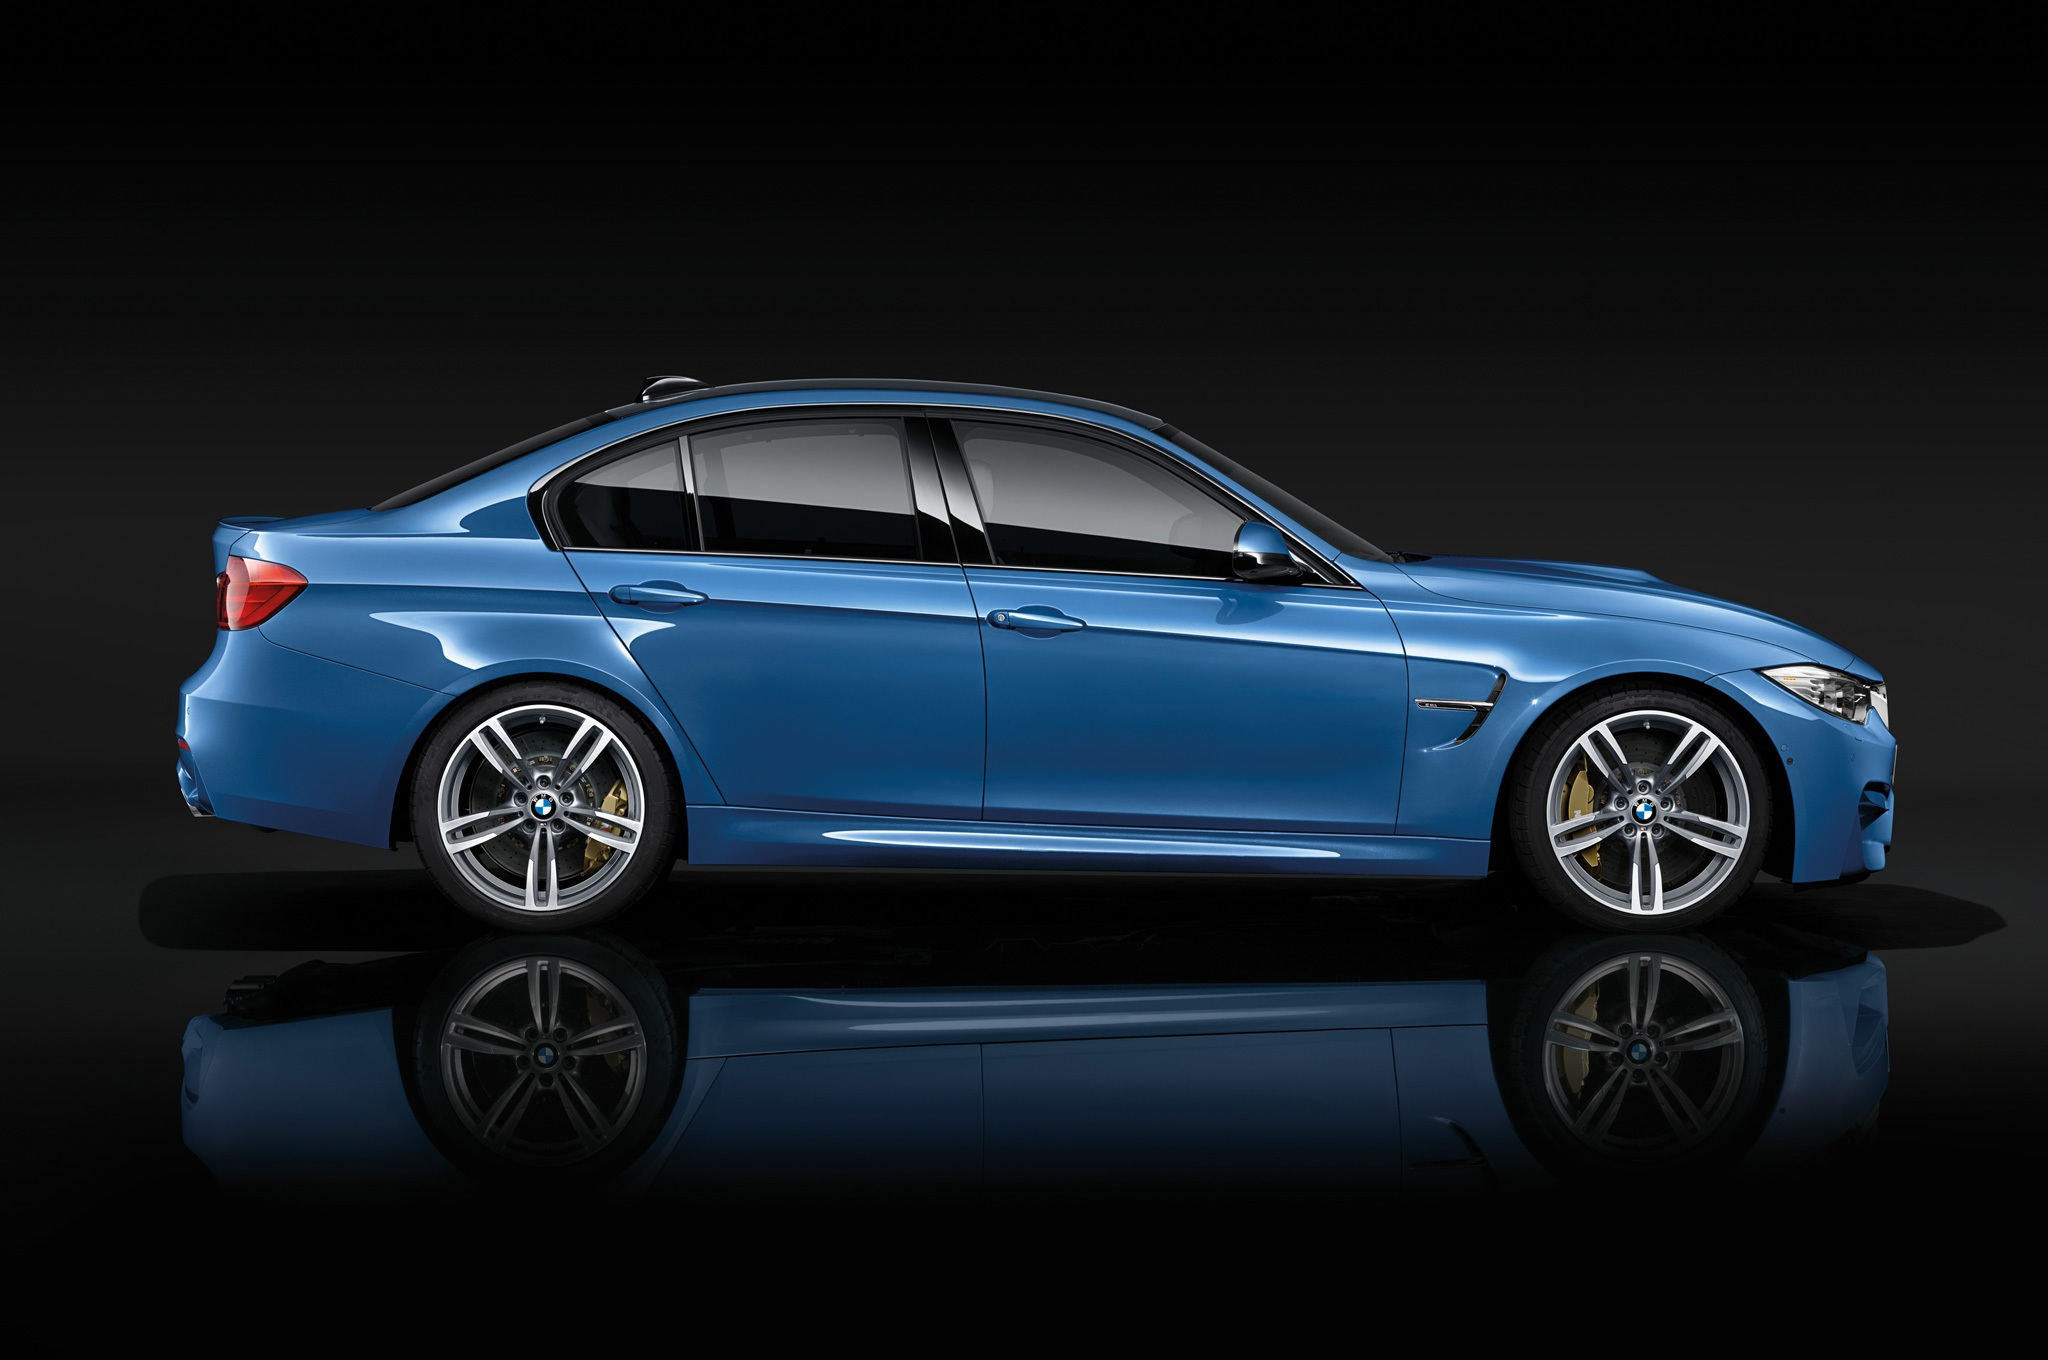 2015 Bmw M3 Side View (Photo 14 of 55)